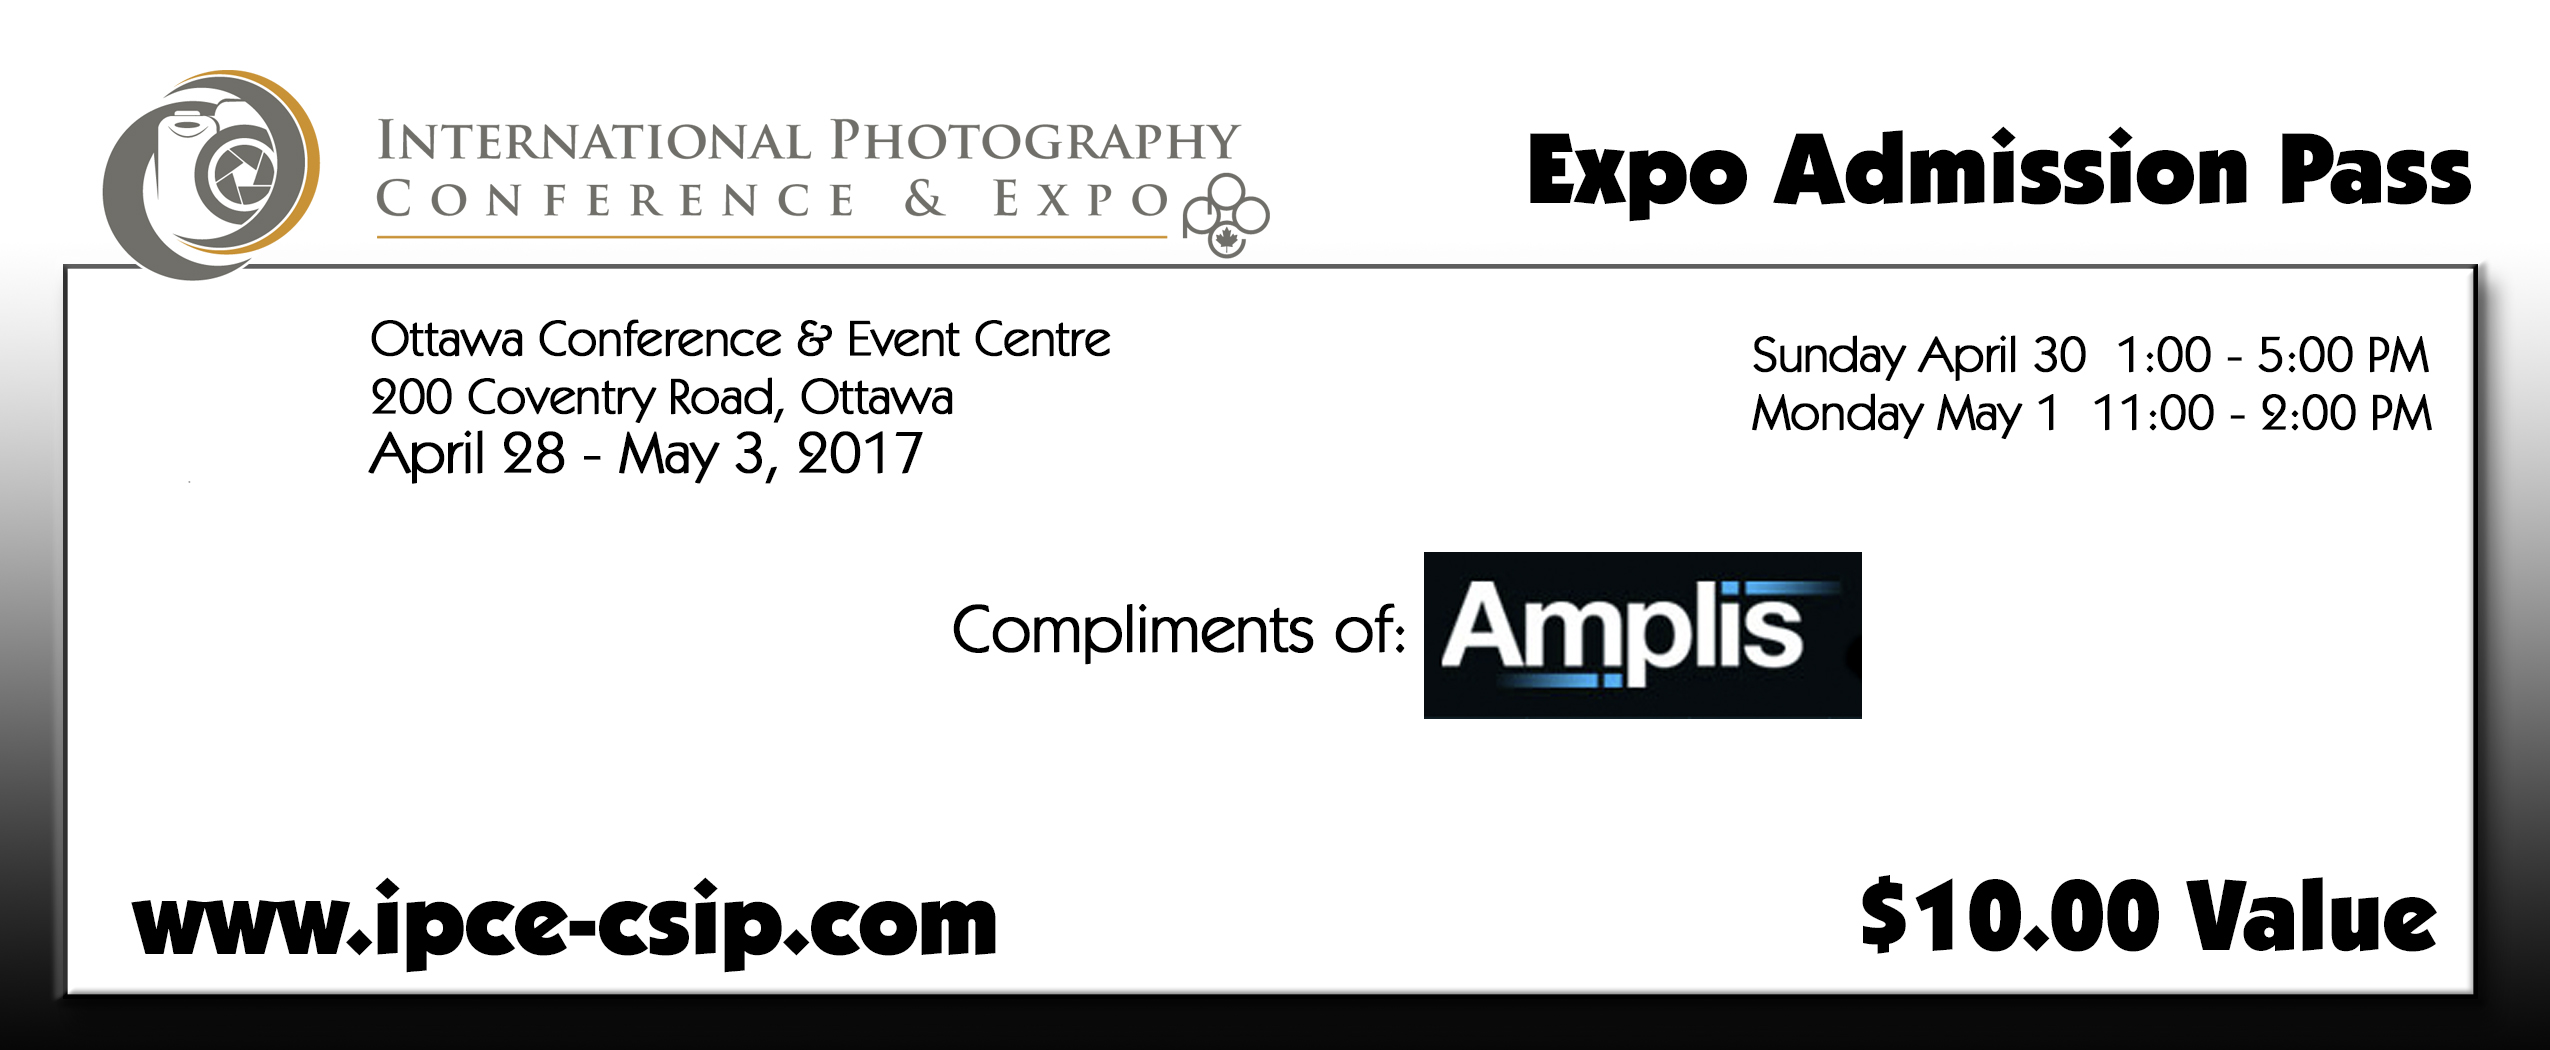 Expo Admission Pass